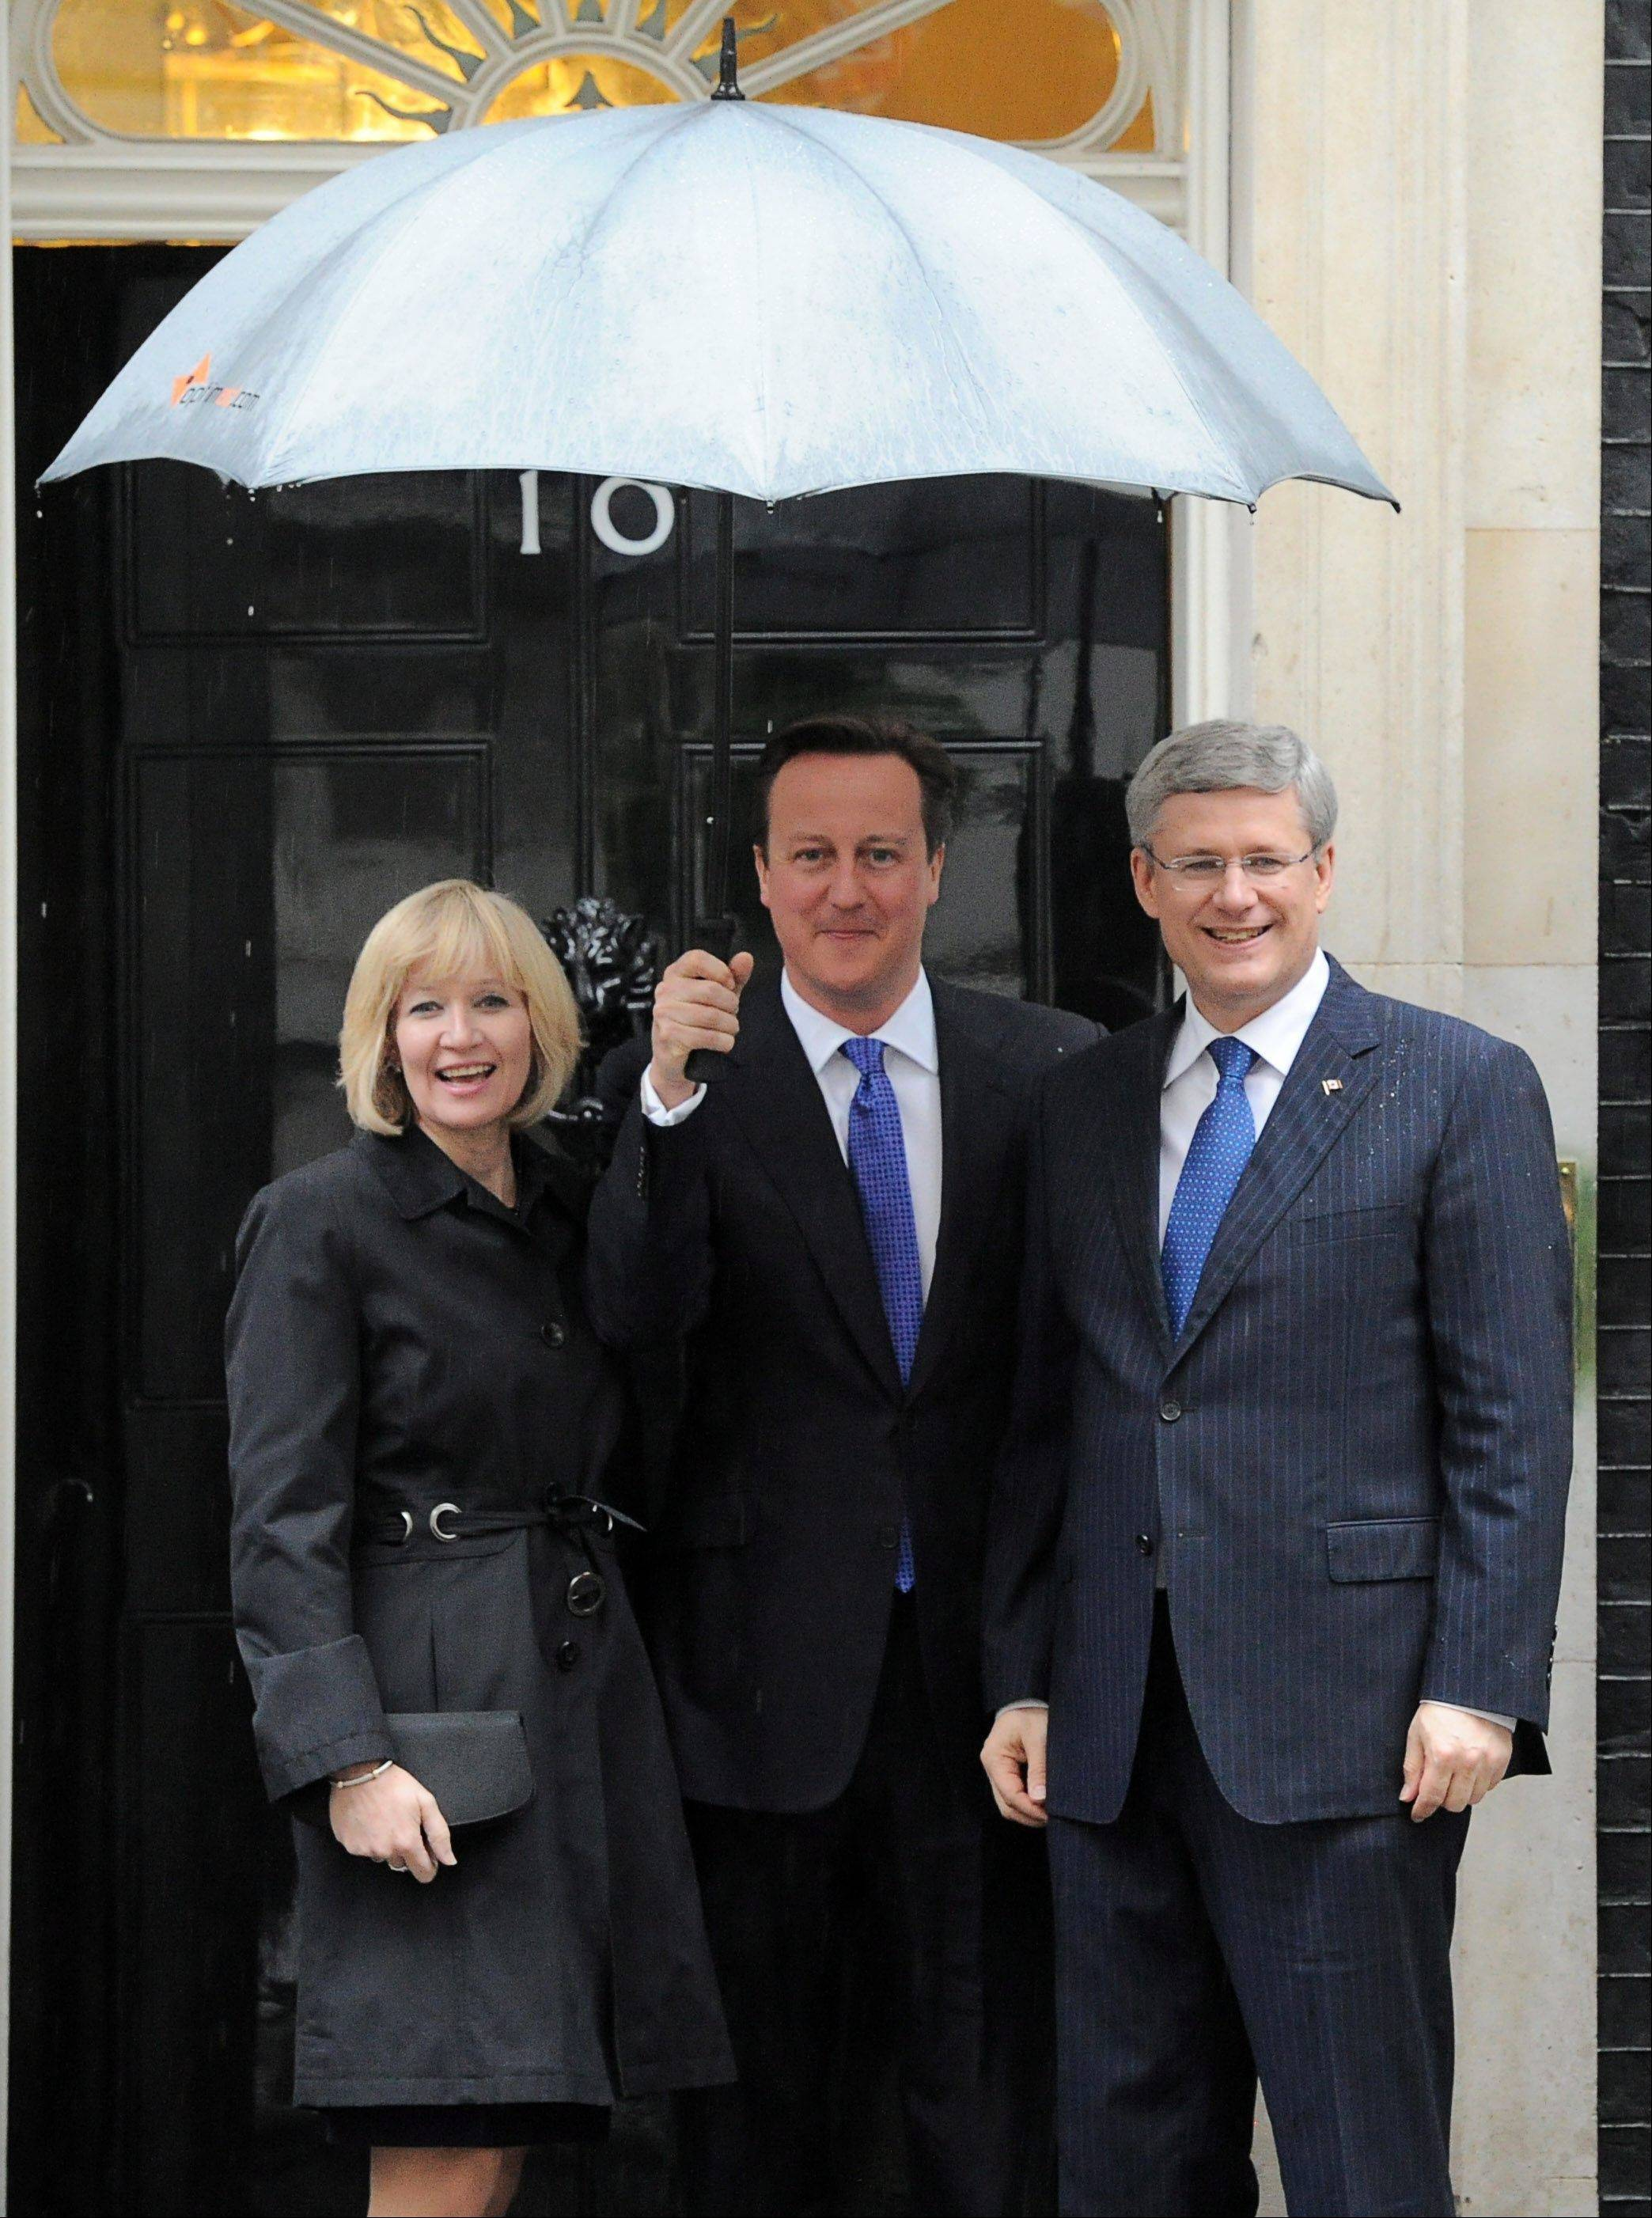 Prime Minister Stephen Harper and wife Laureen are greeted by British Prime Minister David Cameron as they arrive to 10 Downing Street in London on Tuesday, June 5, 2012, during the Queen's Diamond Jubilee. The well-wishers came in all ages, from across Britain and around the world, and many seemed genuinely moved.